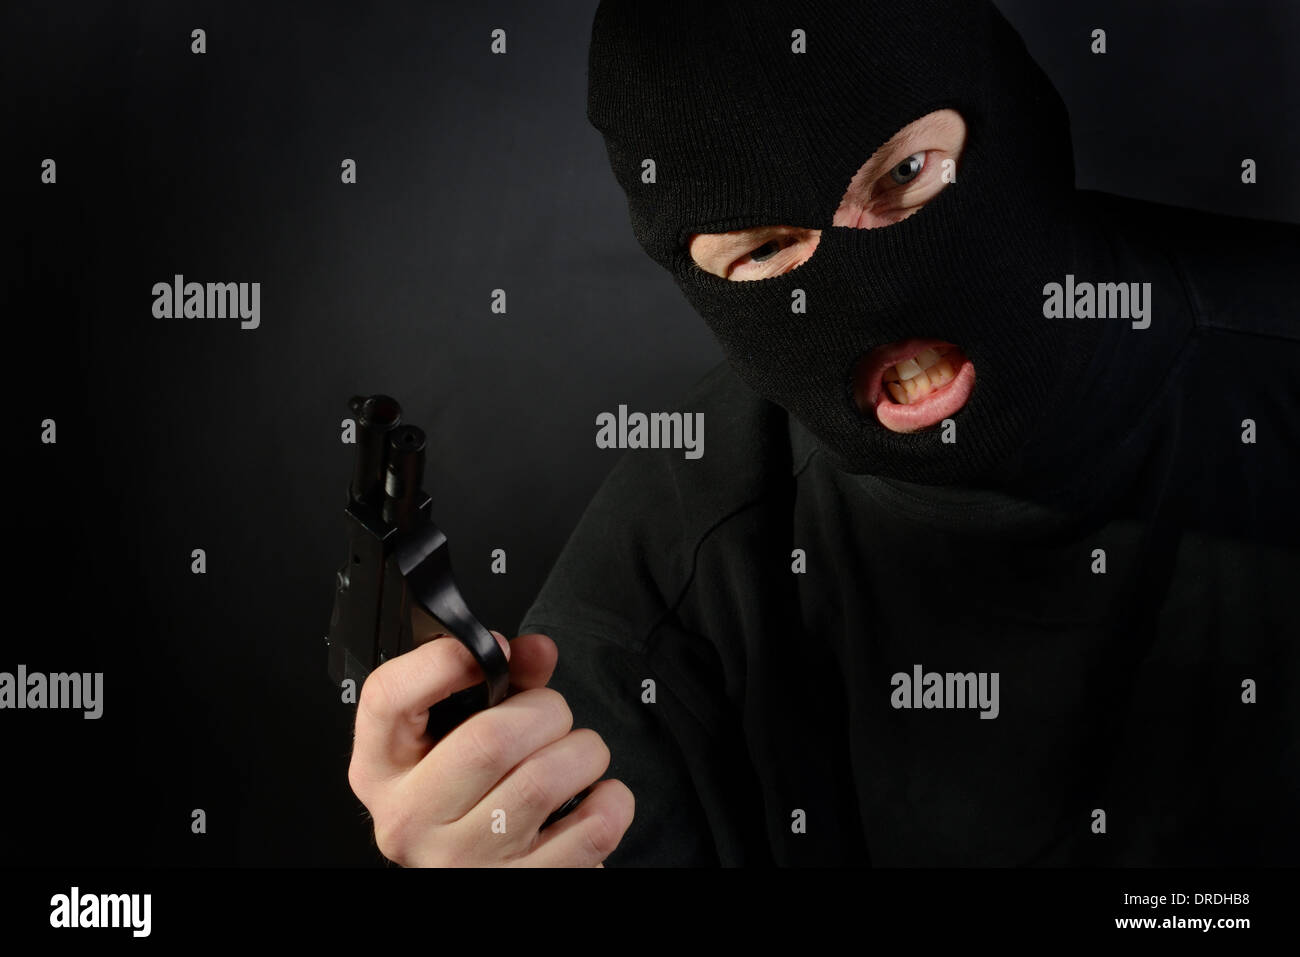 terrorist in a ski mask holding a gun with a dark background - Stock Image